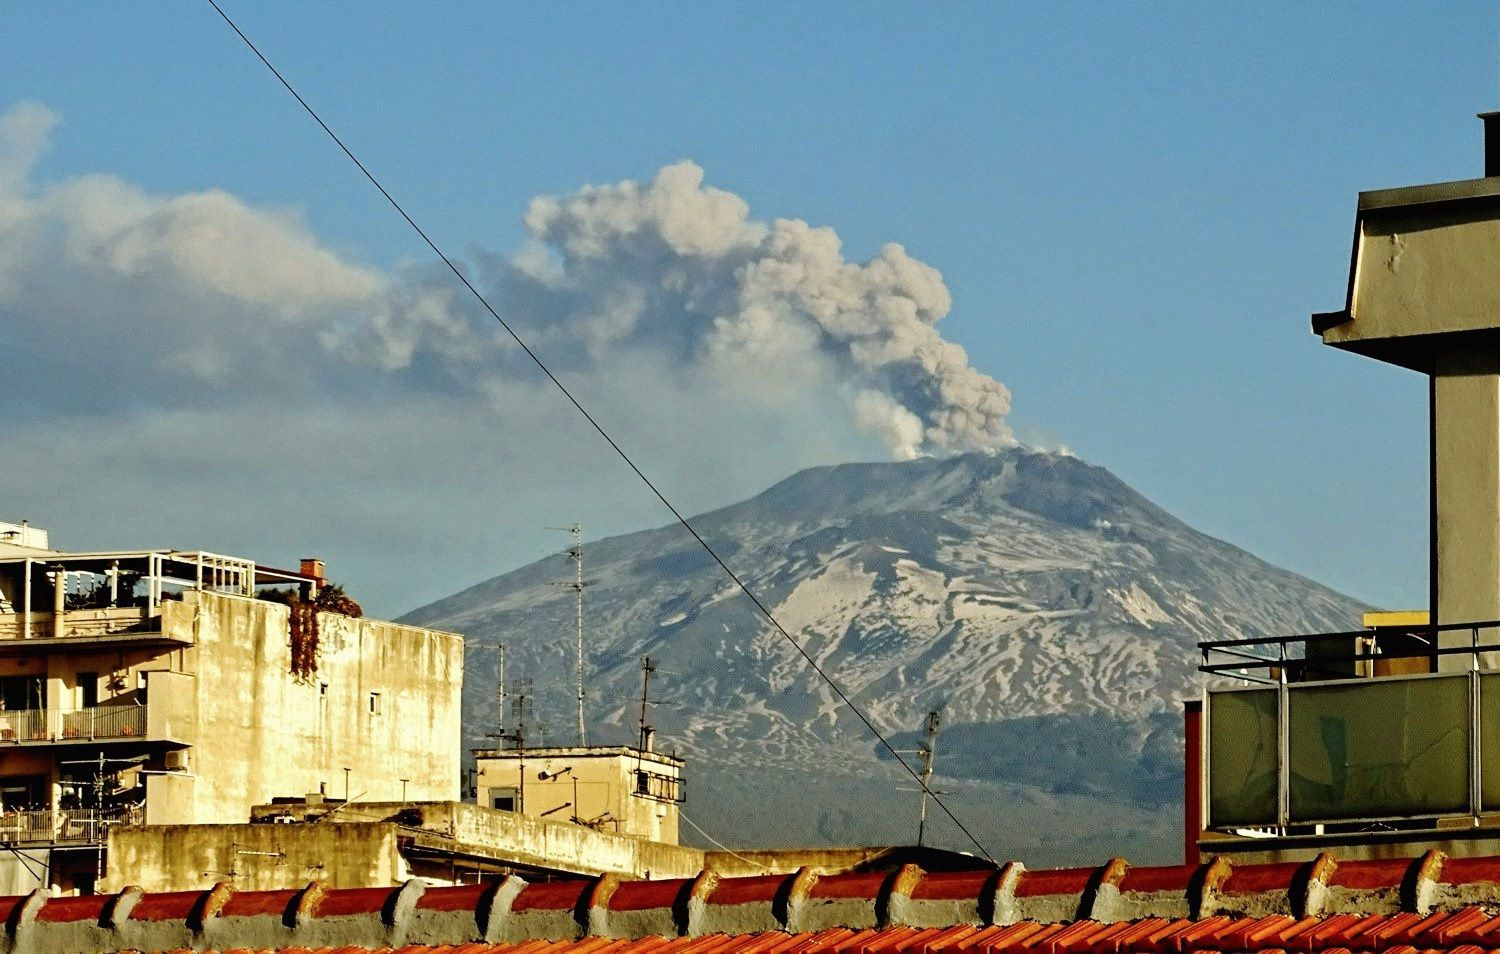 Etna - the ash plume of the NEC seen from the roof of the Etna-Observatory in Catania this morning, February 18, 2019. The wind was pushing it westward, an unusual direction. - photo Boris Behncke